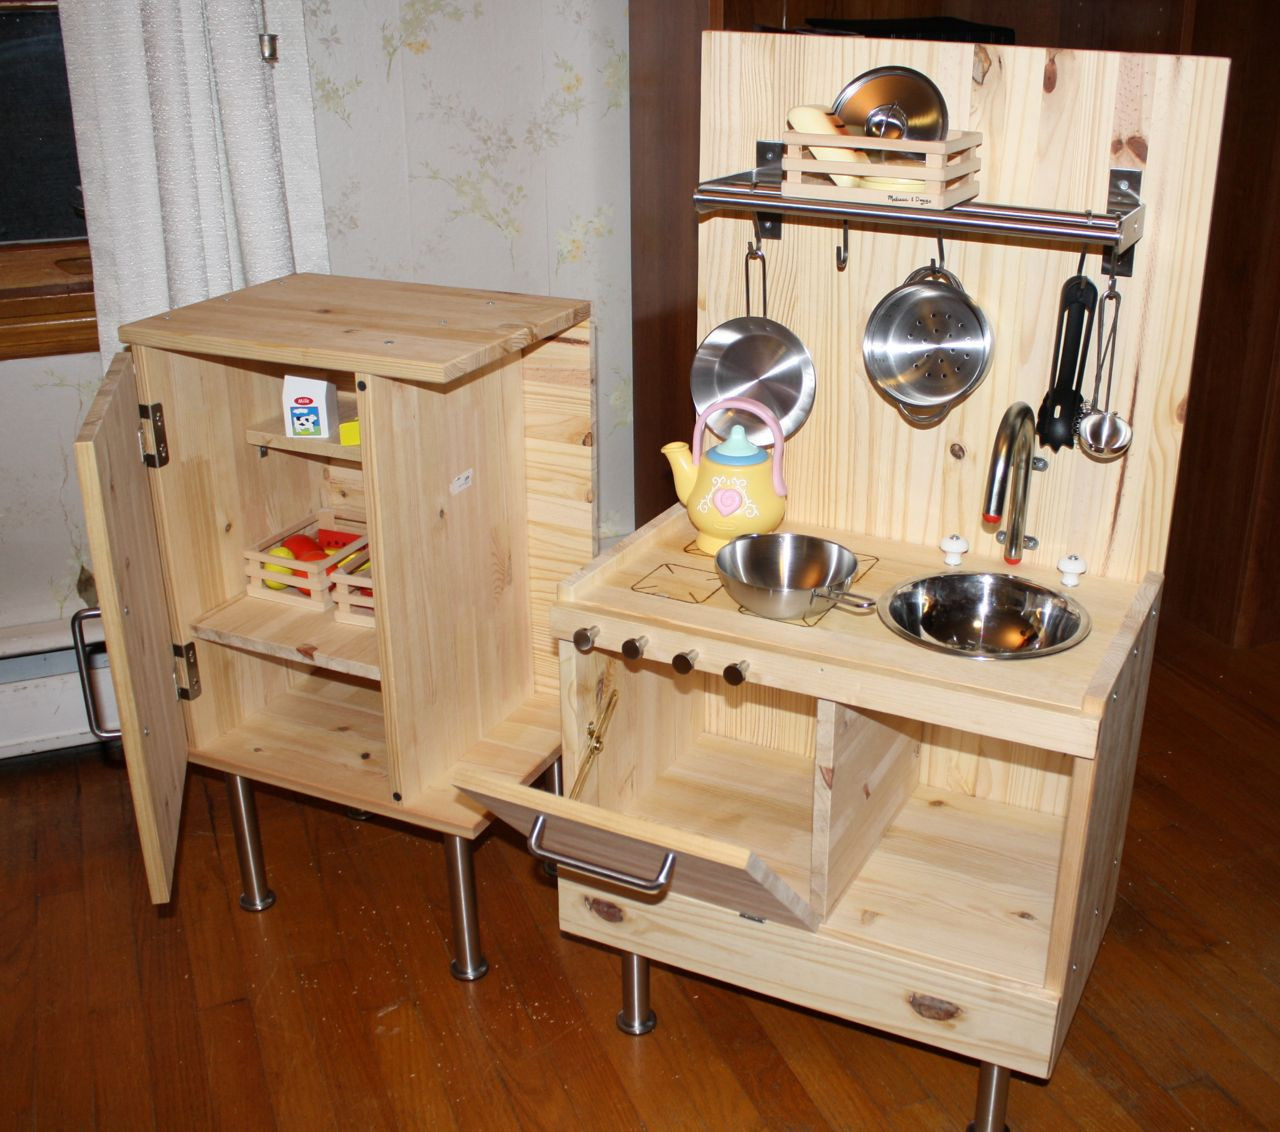 Best ideas about DIY Ikea Kitchen . Save or Pin 10 Cool DIY IKEA Play Kitchen Hacks Now.